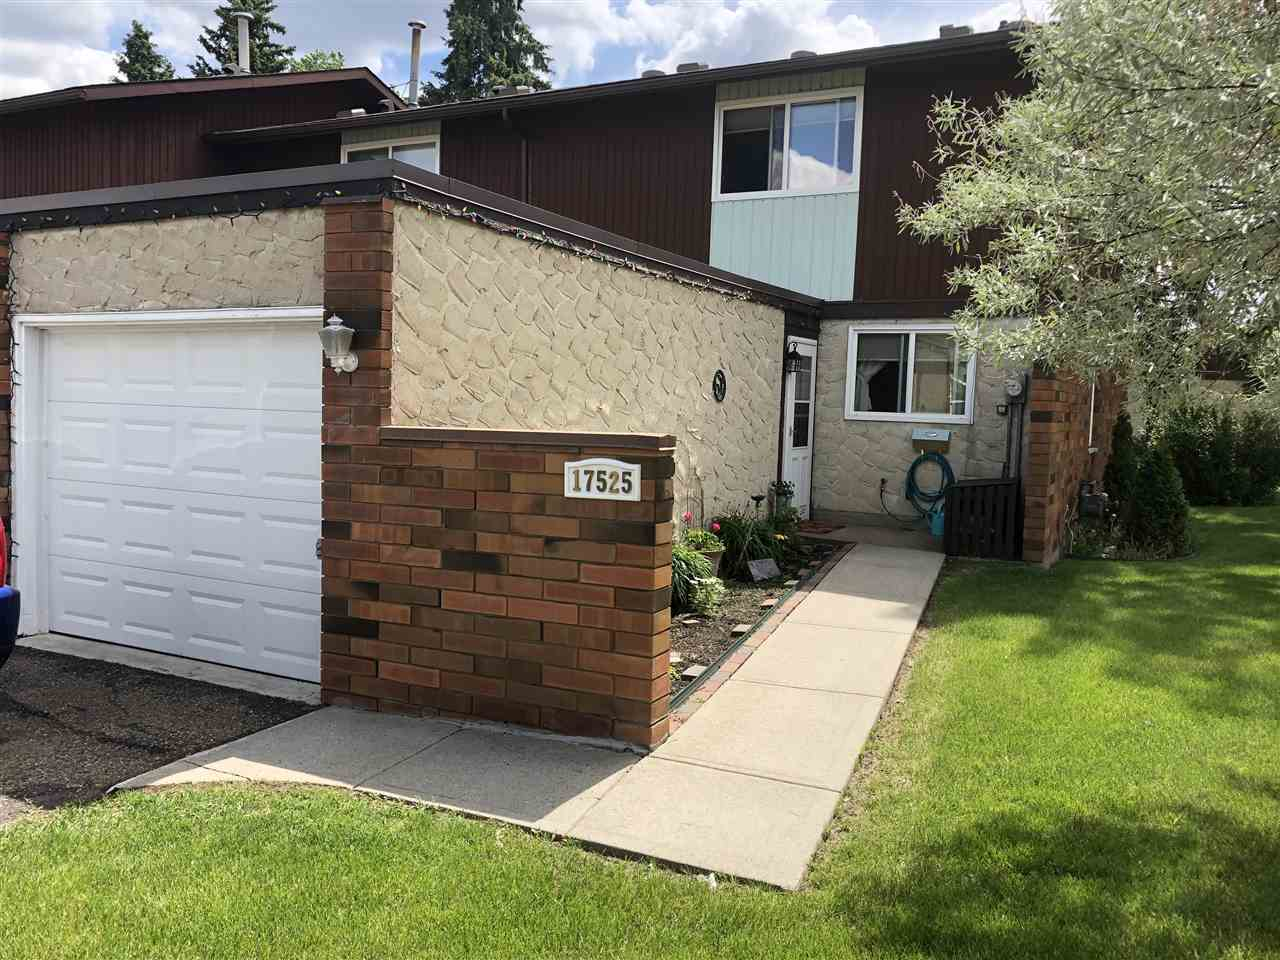 MLS® listing #E4161611 for sale located at 17525 77 Avenue